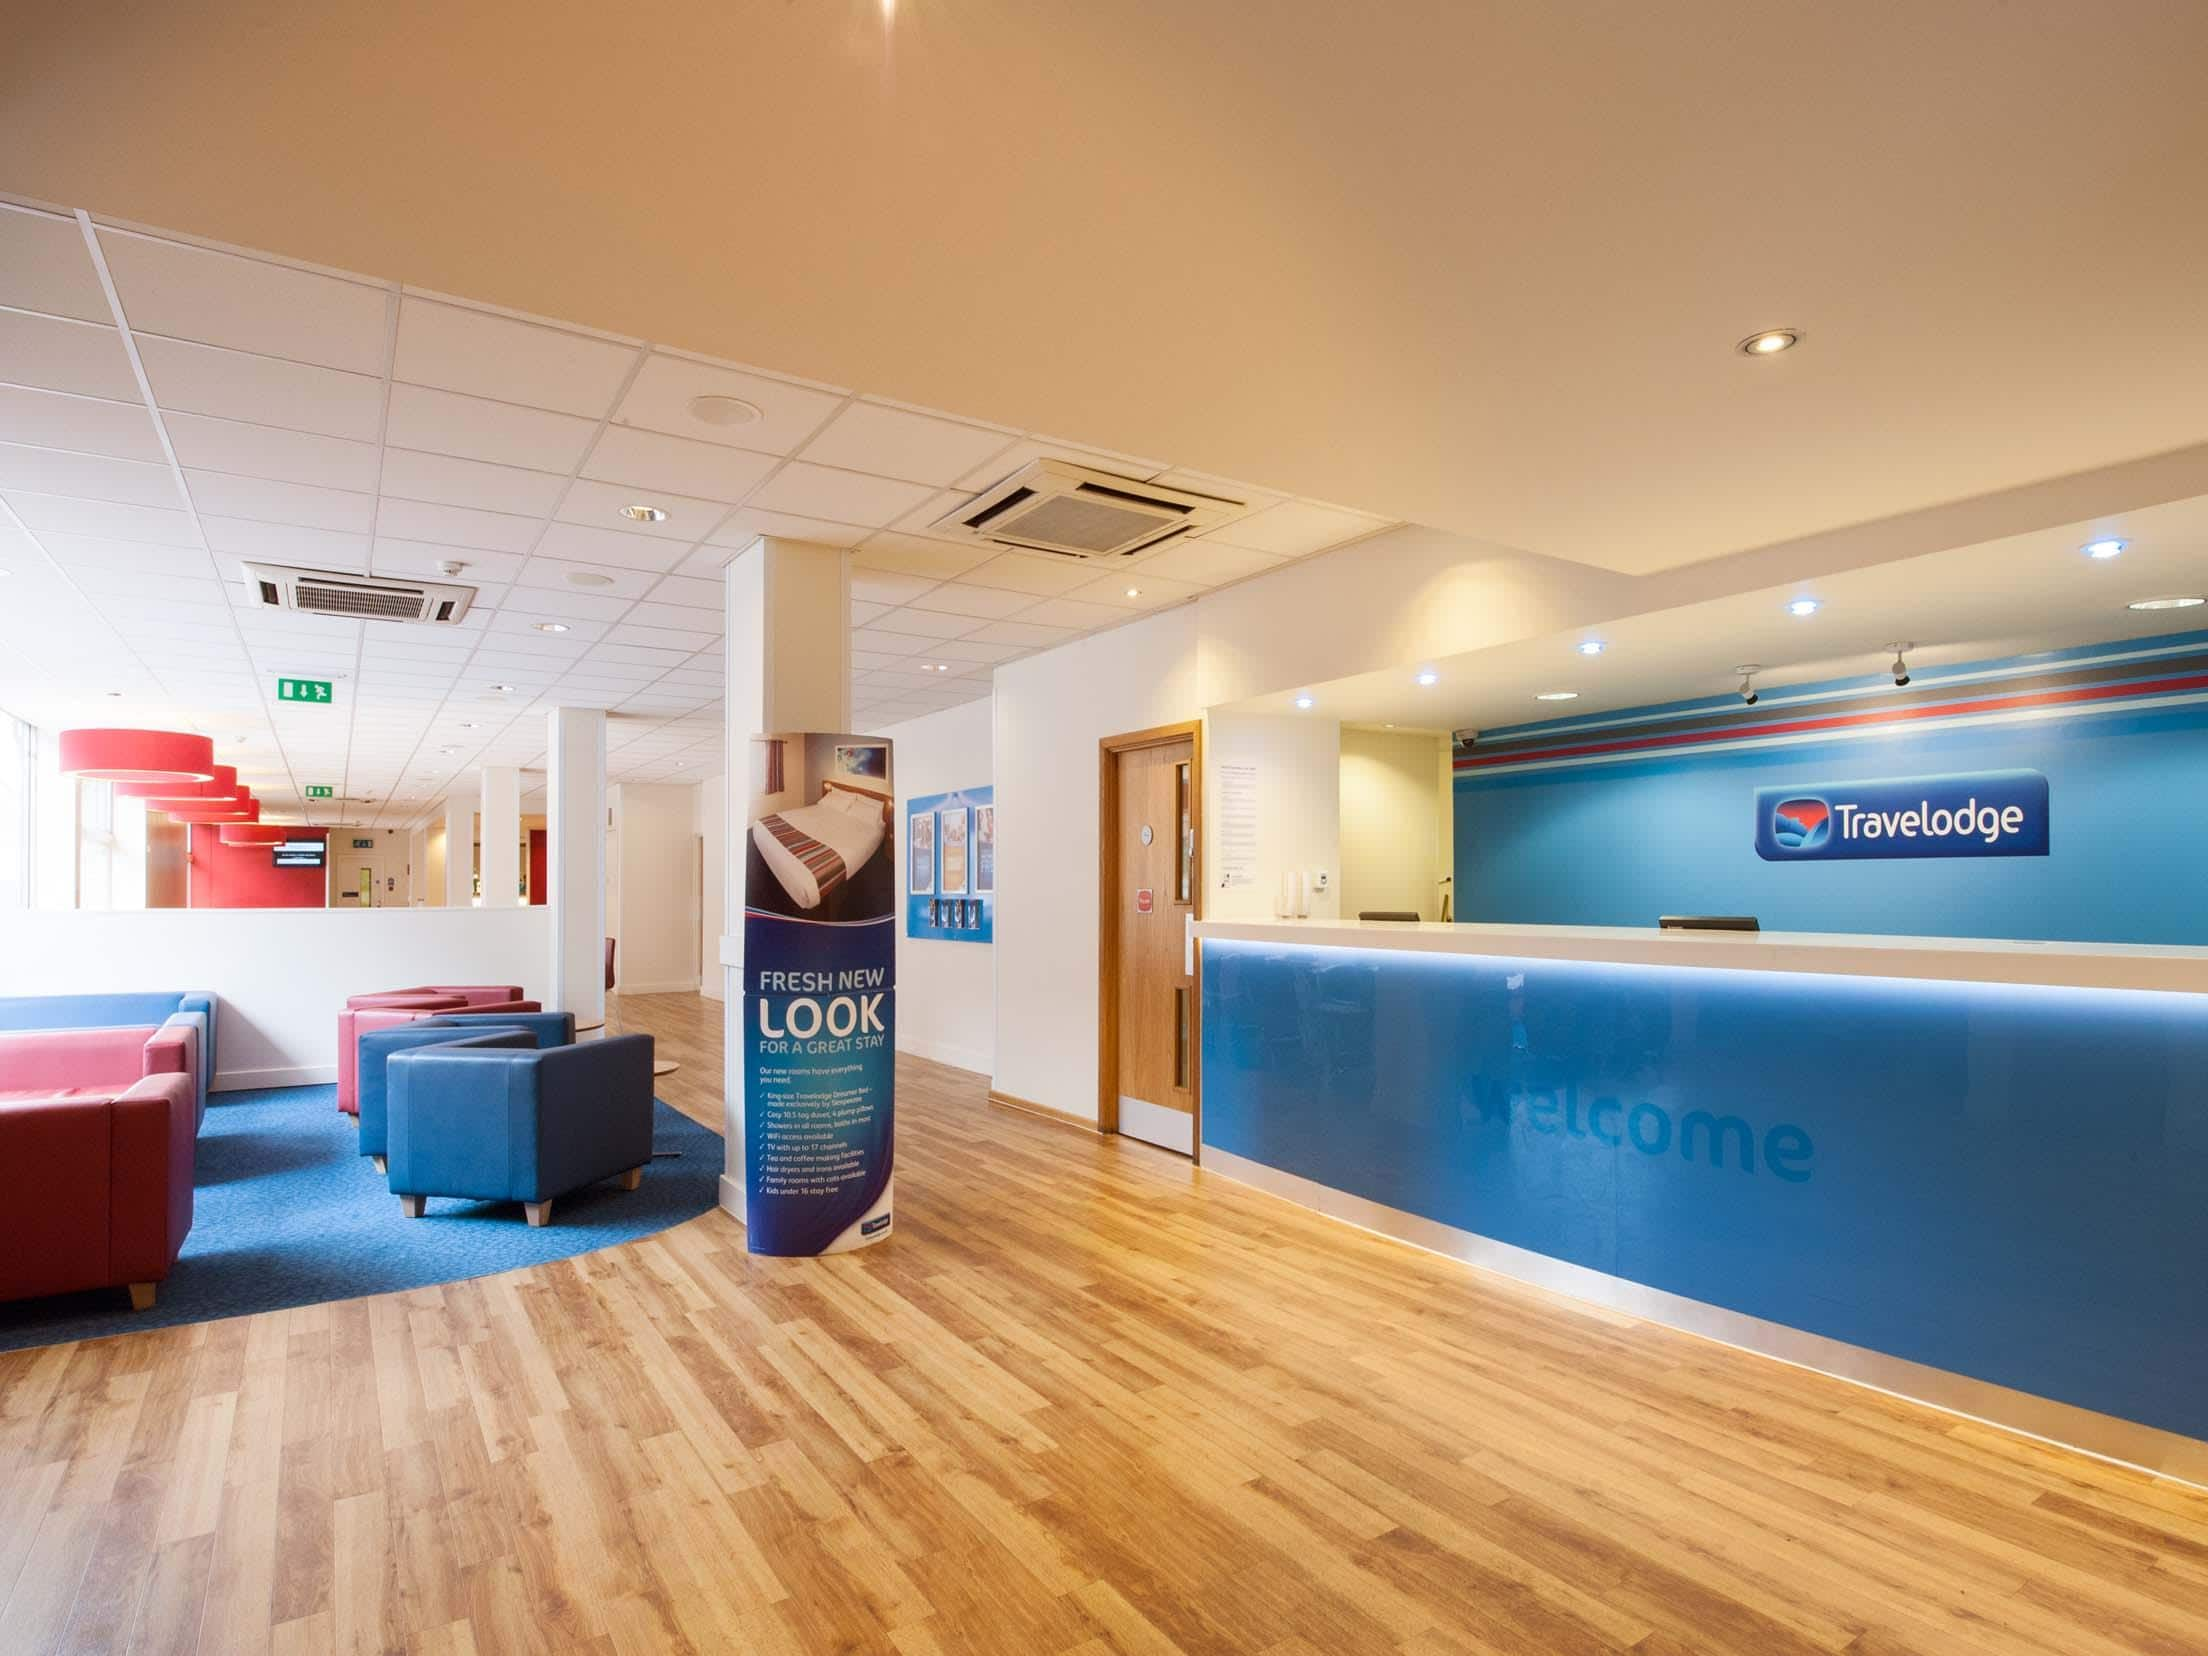 Travelodge | Manchester Central hotel - Manchester Central hotels